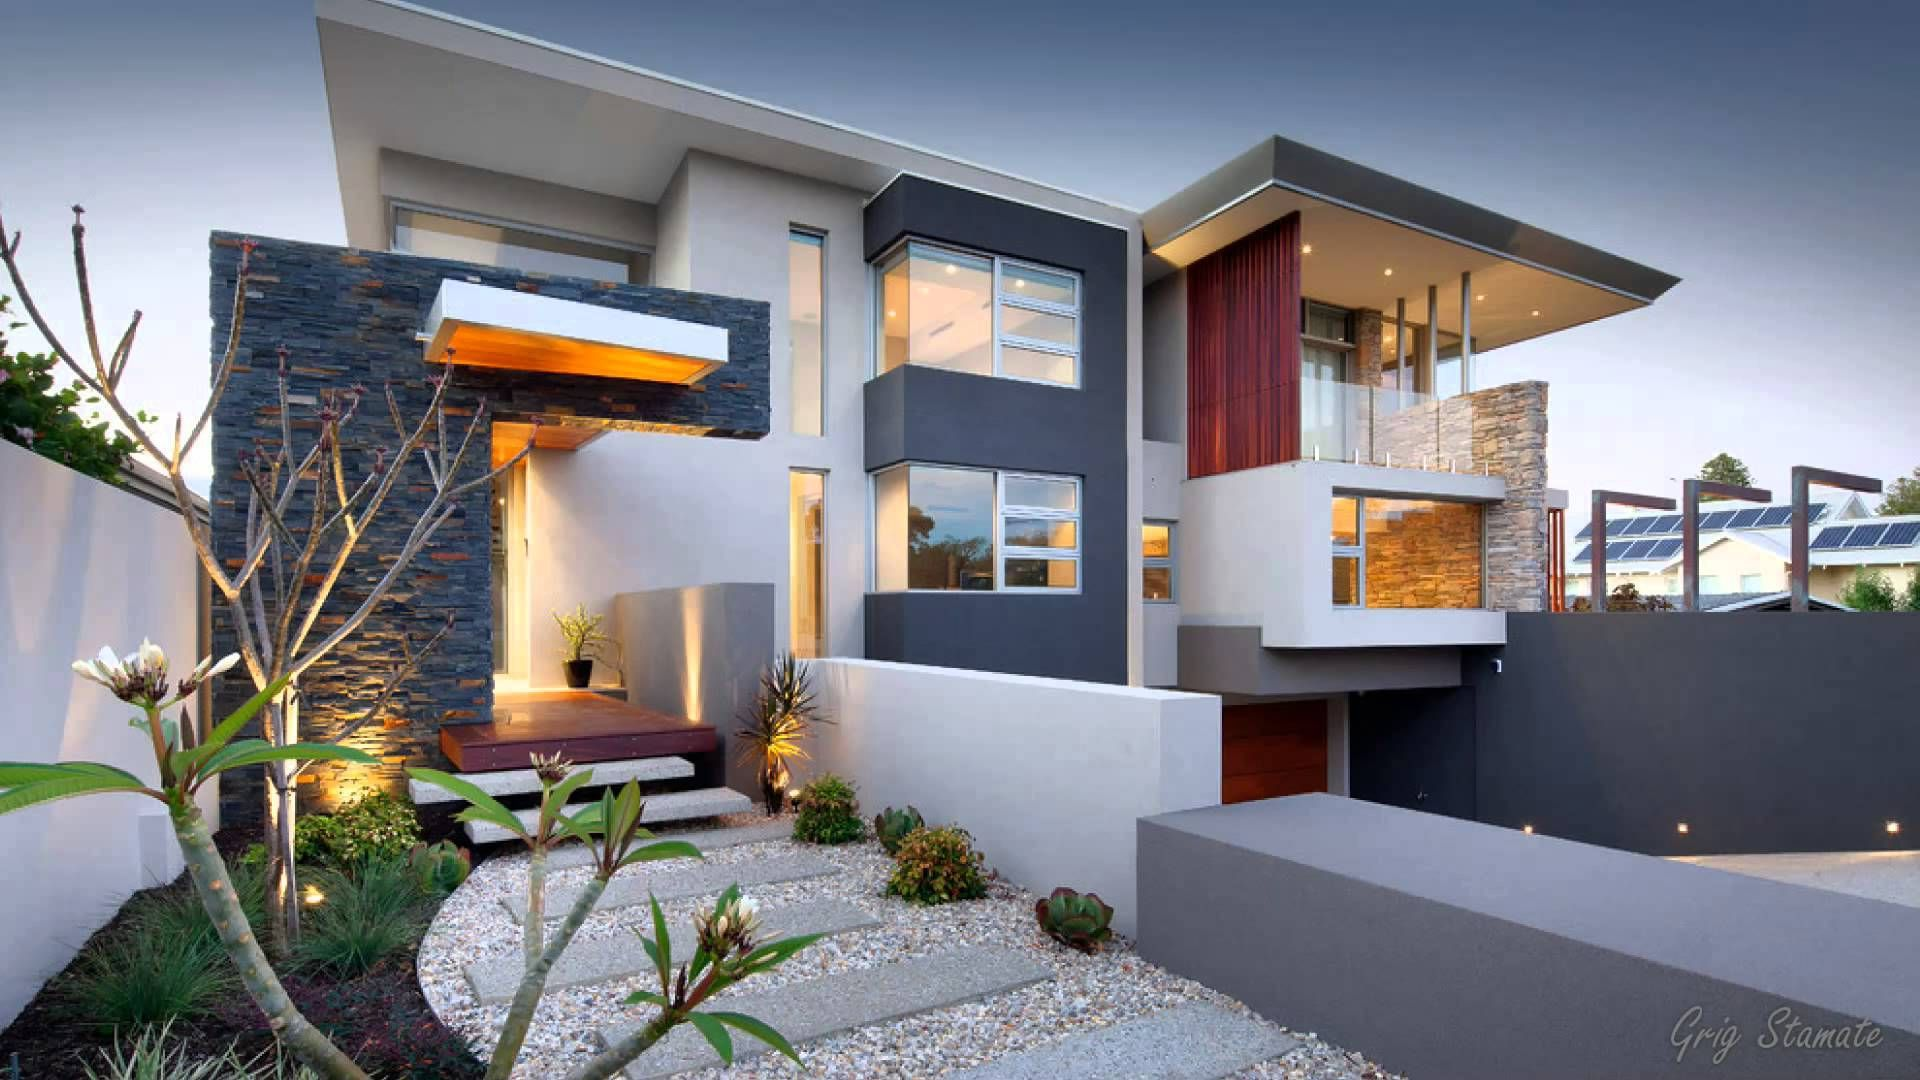 Home interior designers in chennai  beautiful modern home design ideas in one photo gallery  home